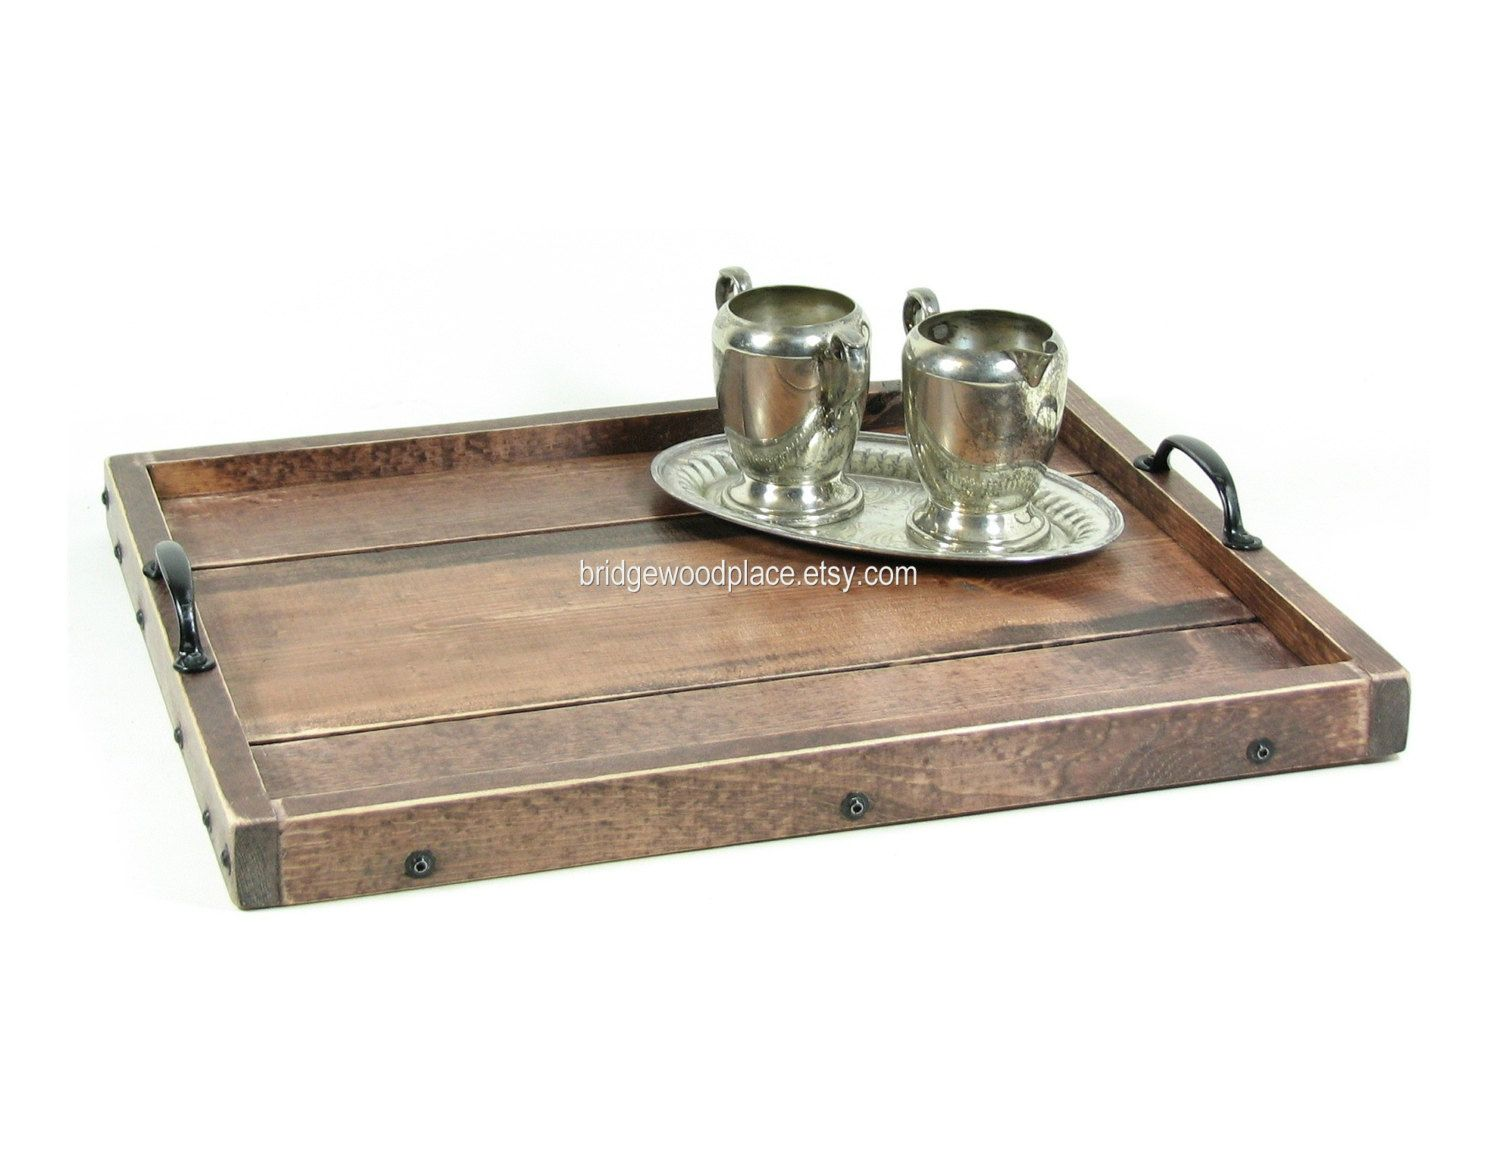 Ottoman Tray Wooden Coffee Table Tray Serving Tray With Handles. $50.00,  Via Etsy.